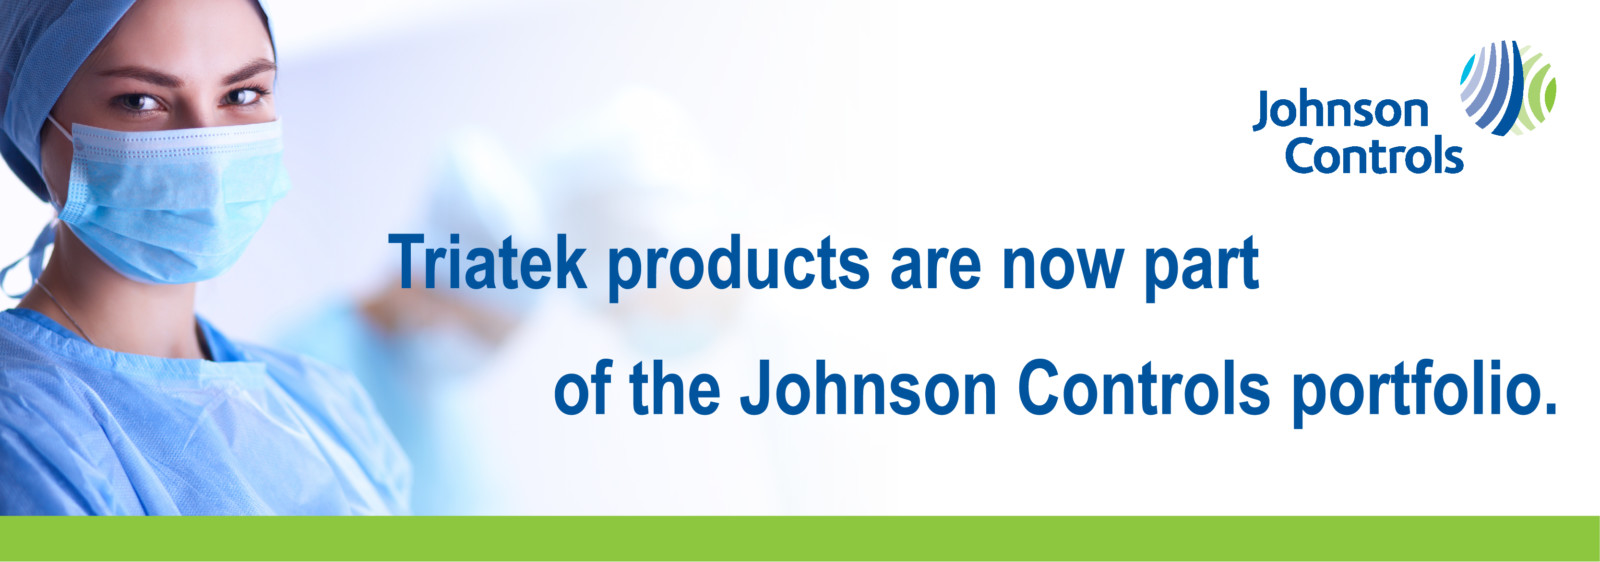 Johnson Controls Acquires Triatek